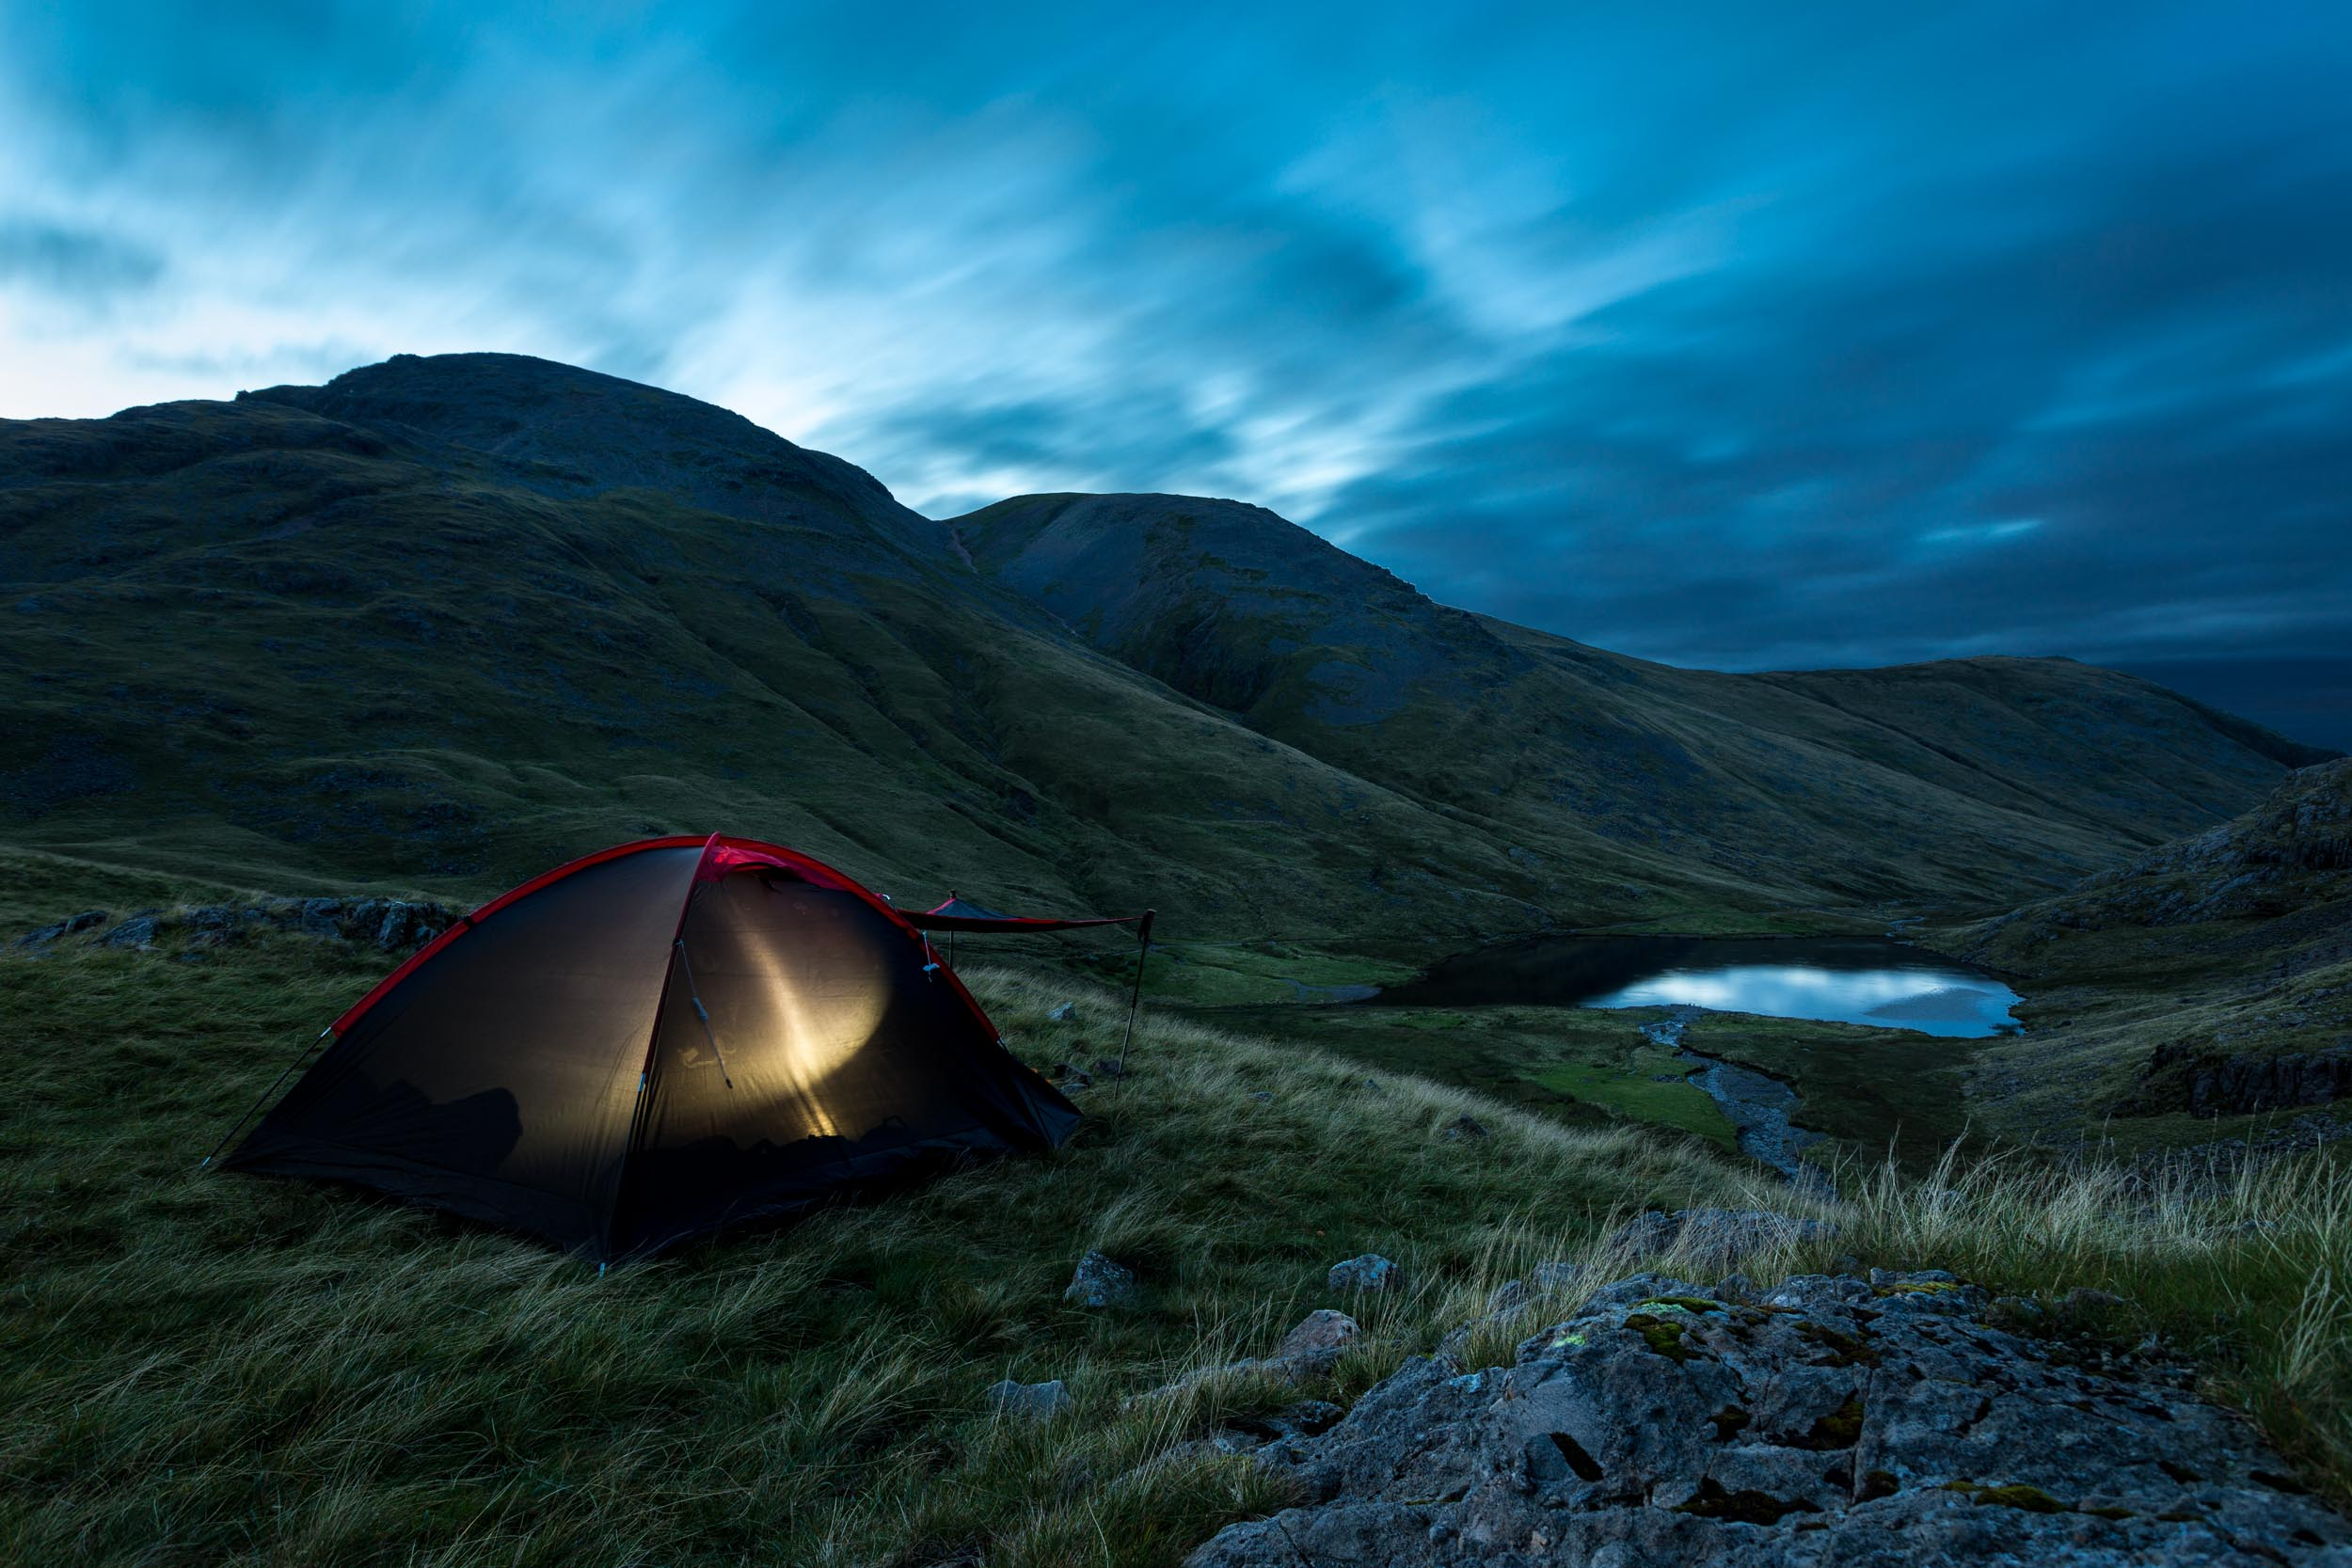 wild camping twilight lake district national park england uk landscape travel long exposure.jpg